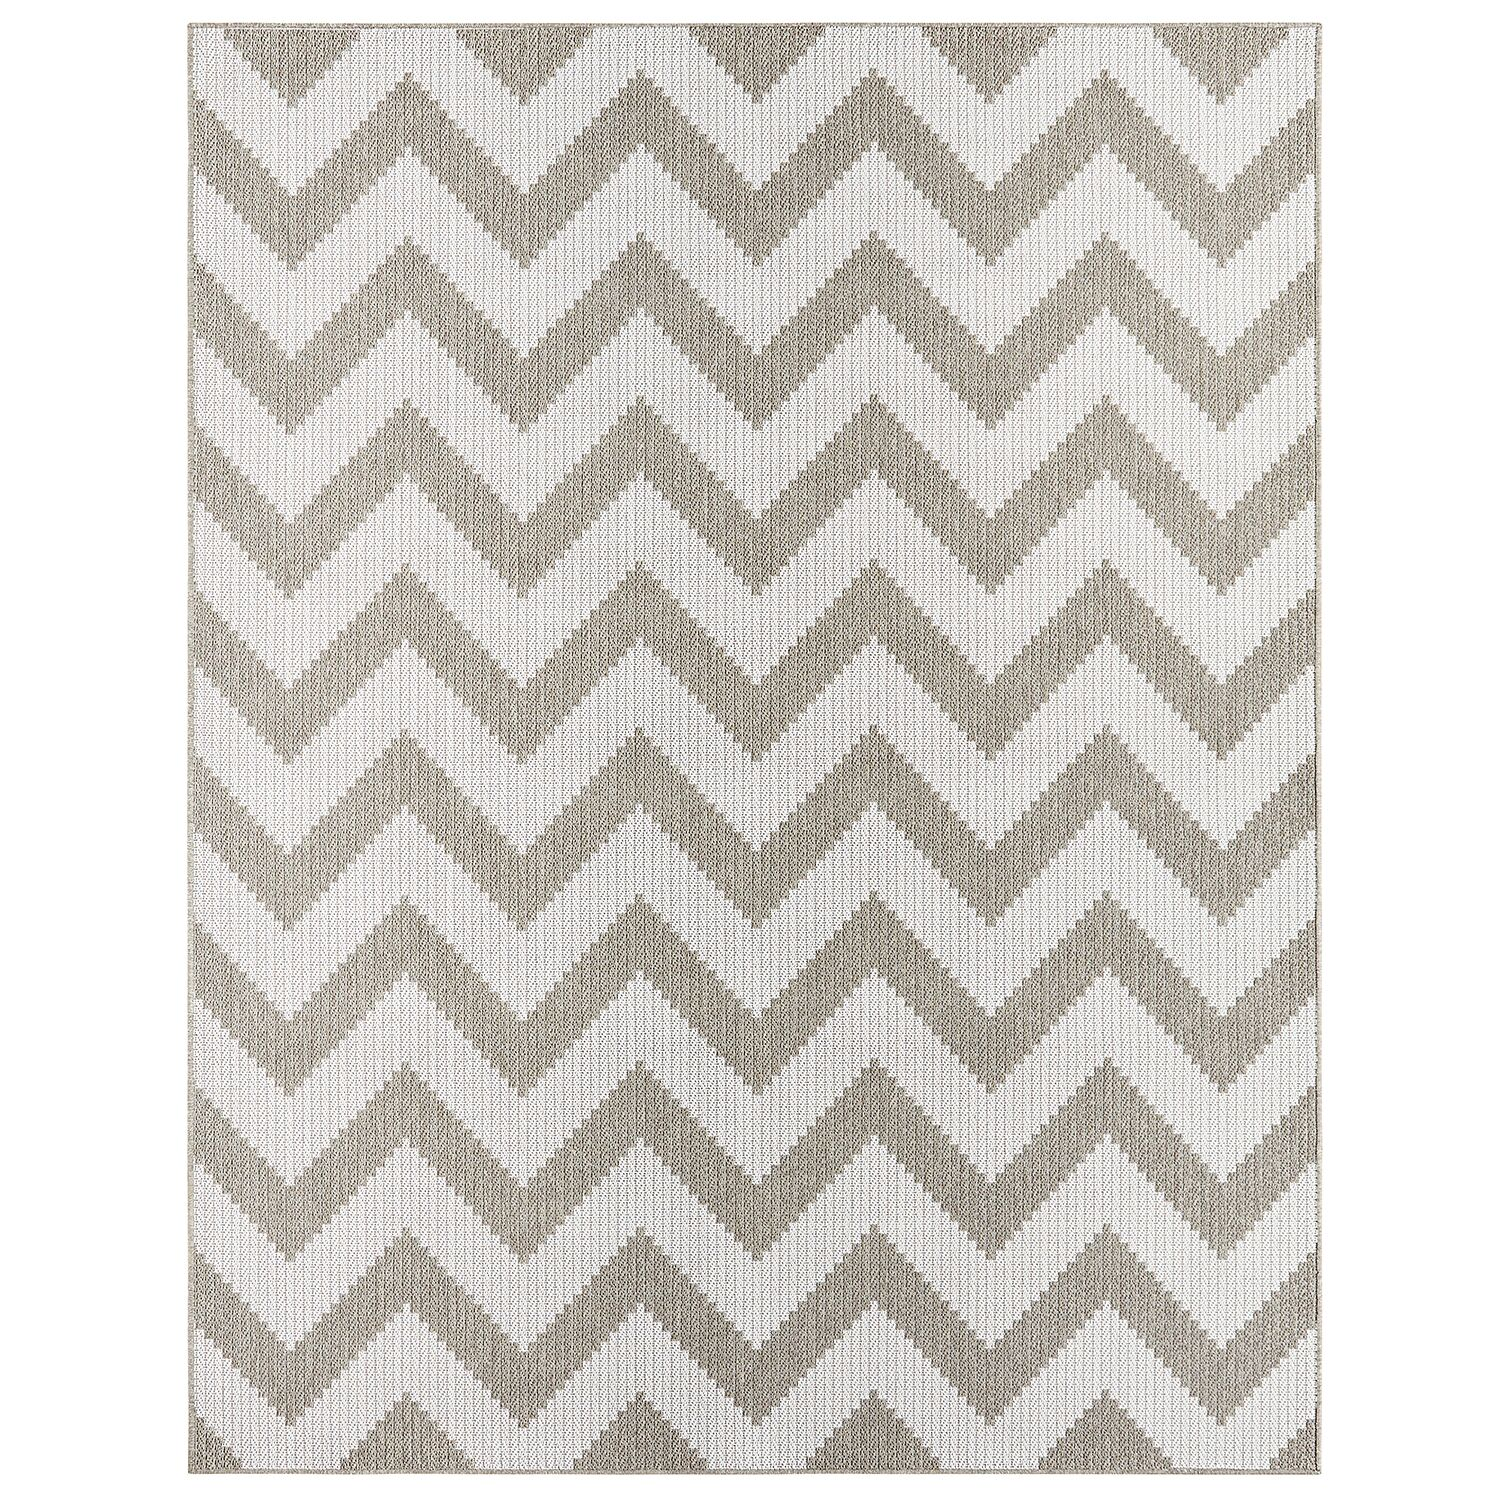 Eisenhower Chevron Gray/Silver Indoor/Outdoor Area Rug Rug Size: Rectangle 8' x 10'